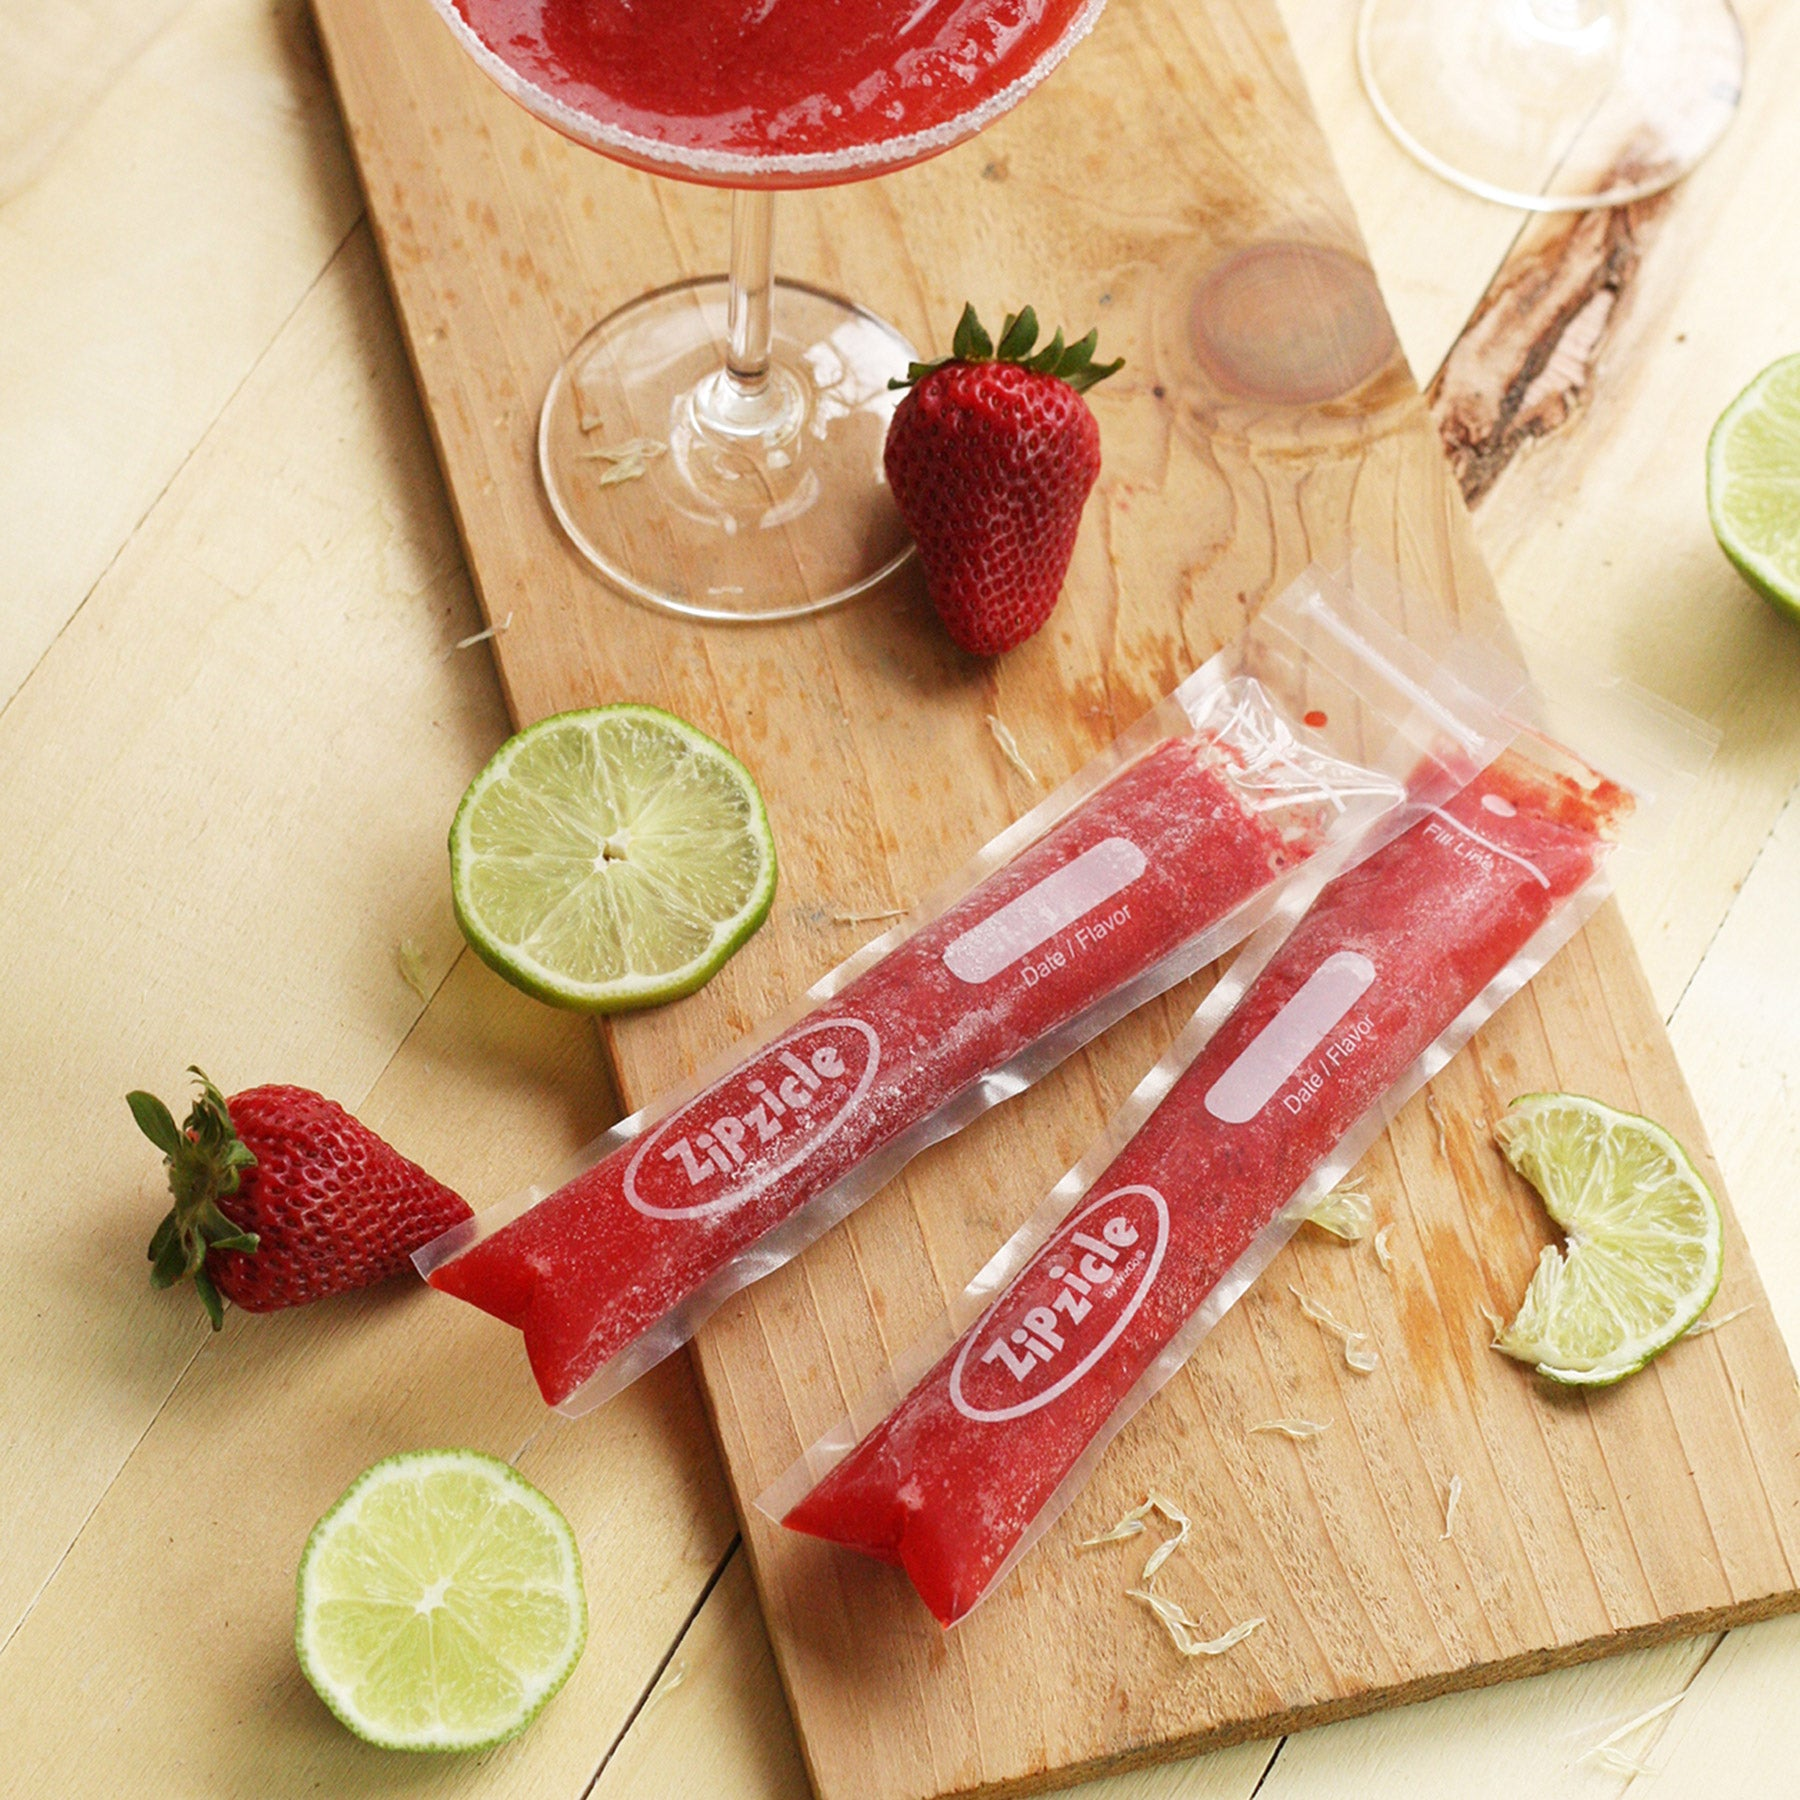 Strawberry Daiquiri Ice Pop